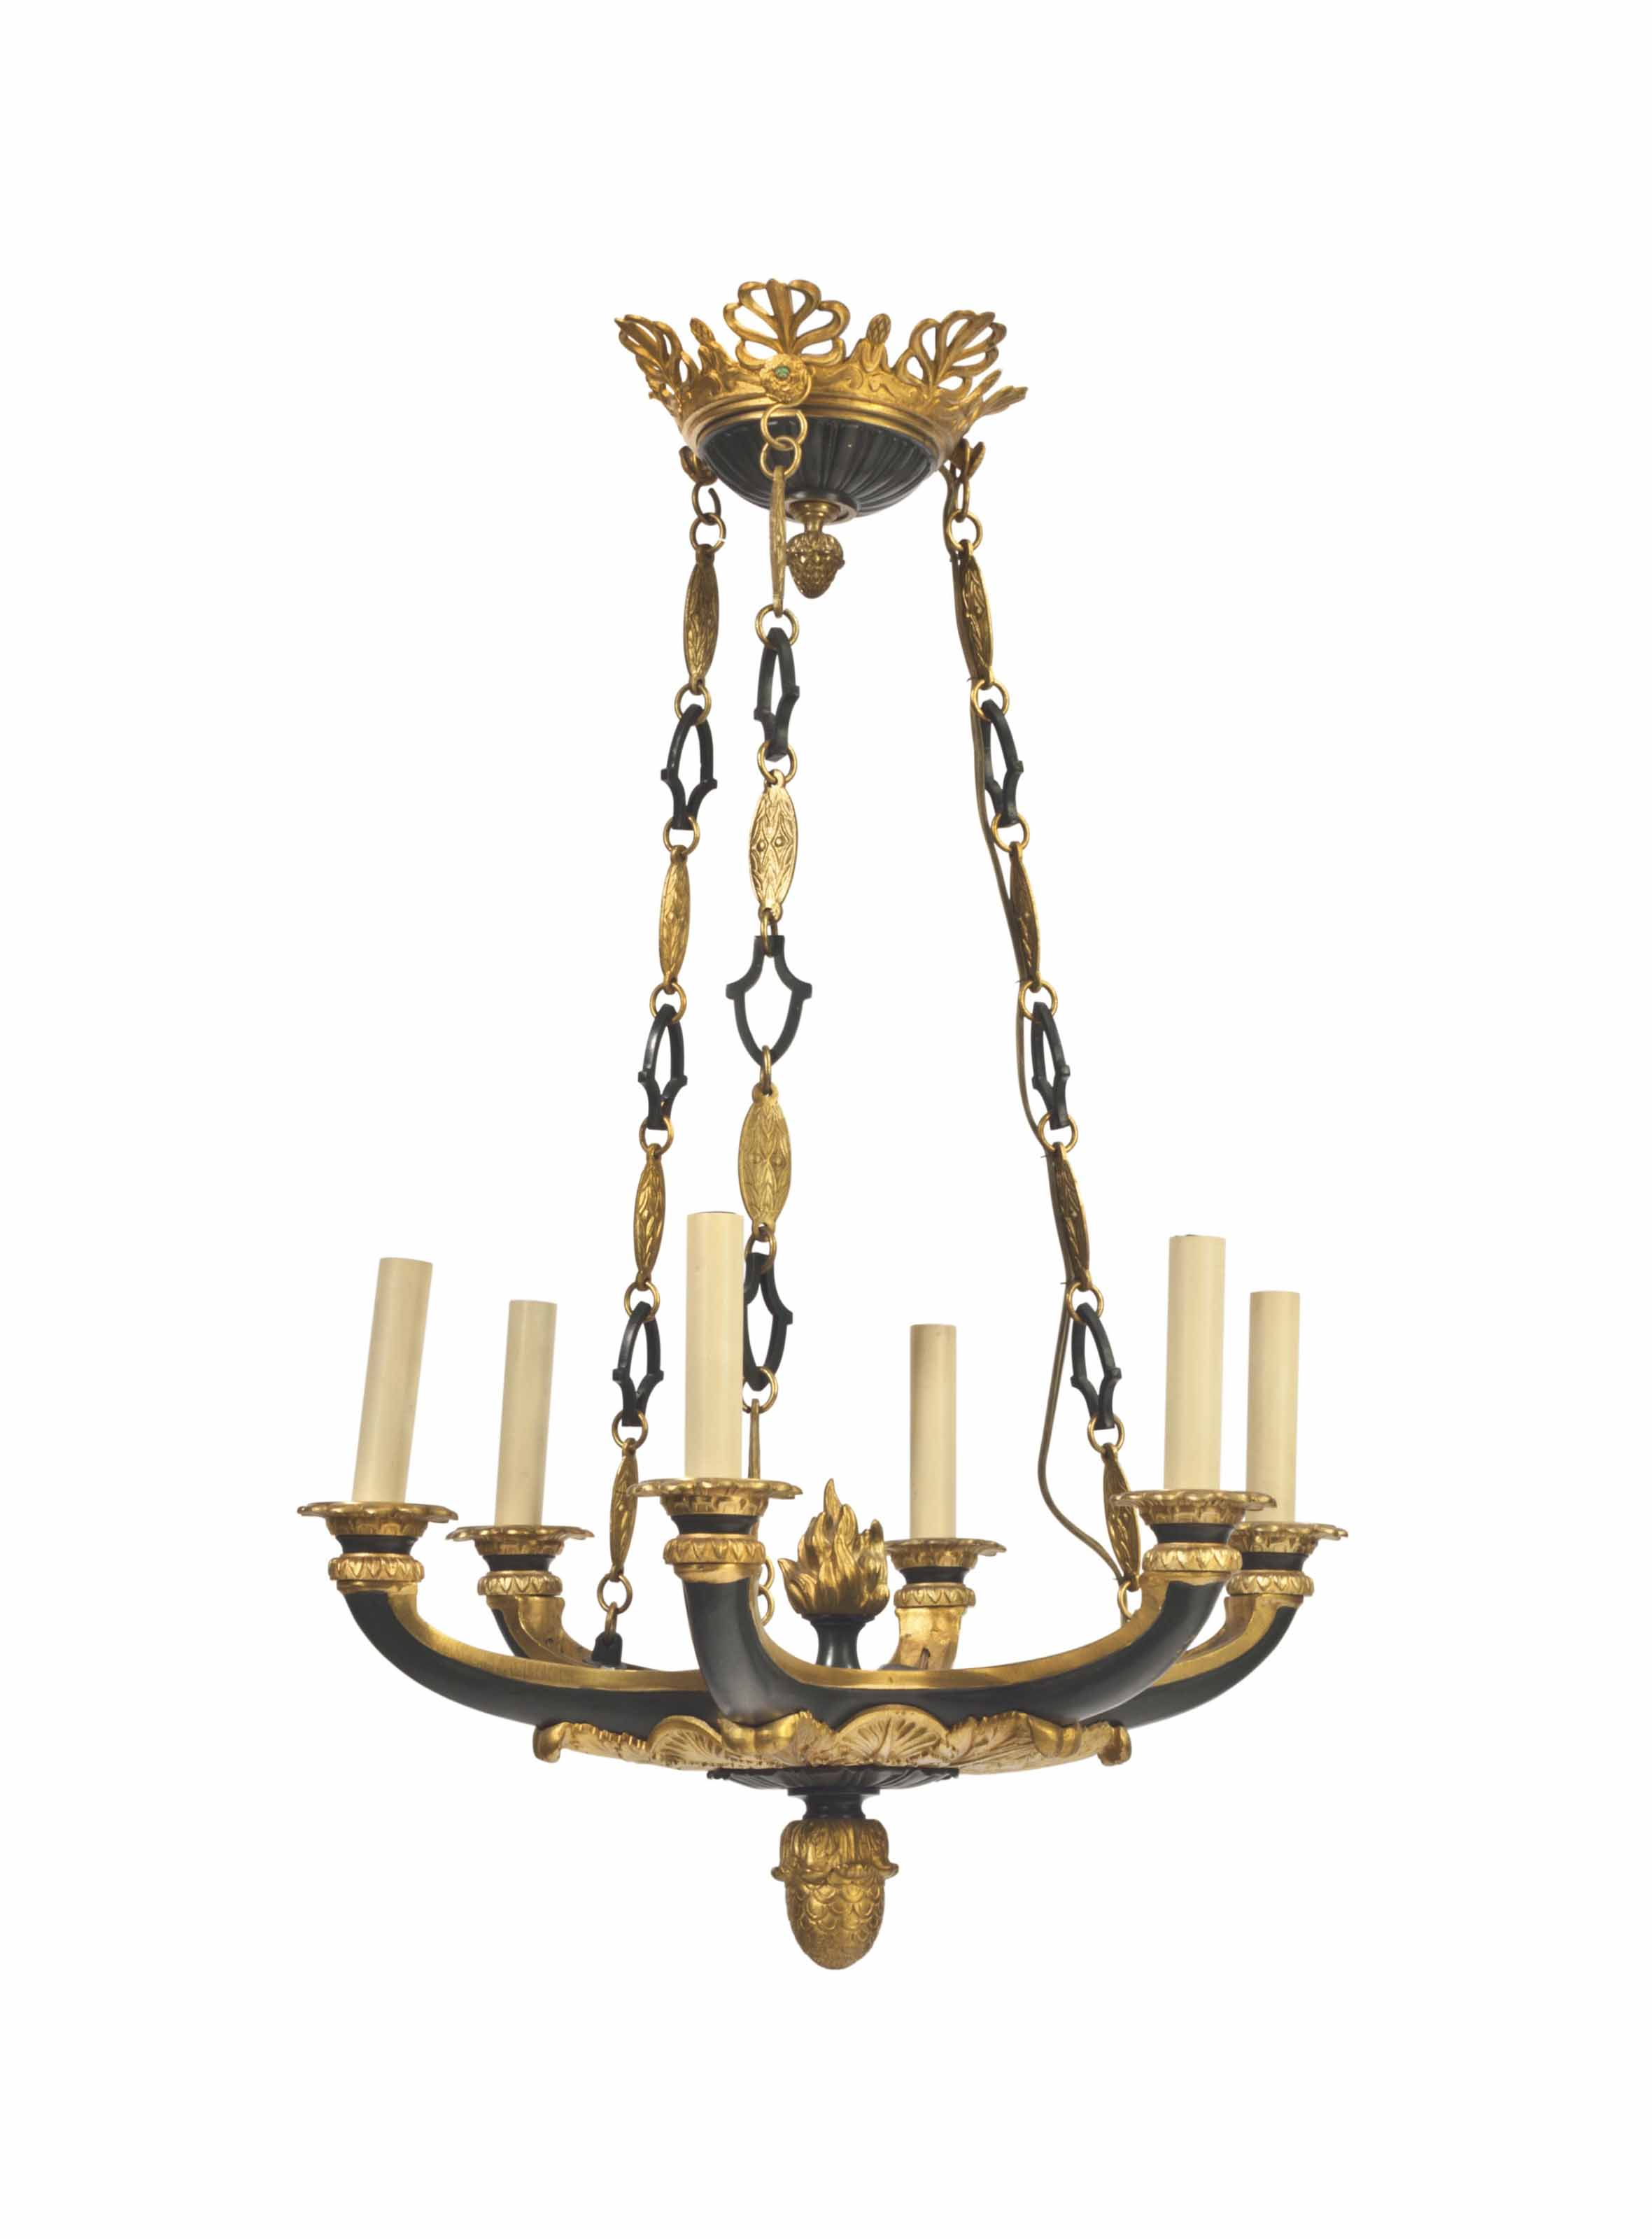 A GILT AND PATINATED METAL SIX